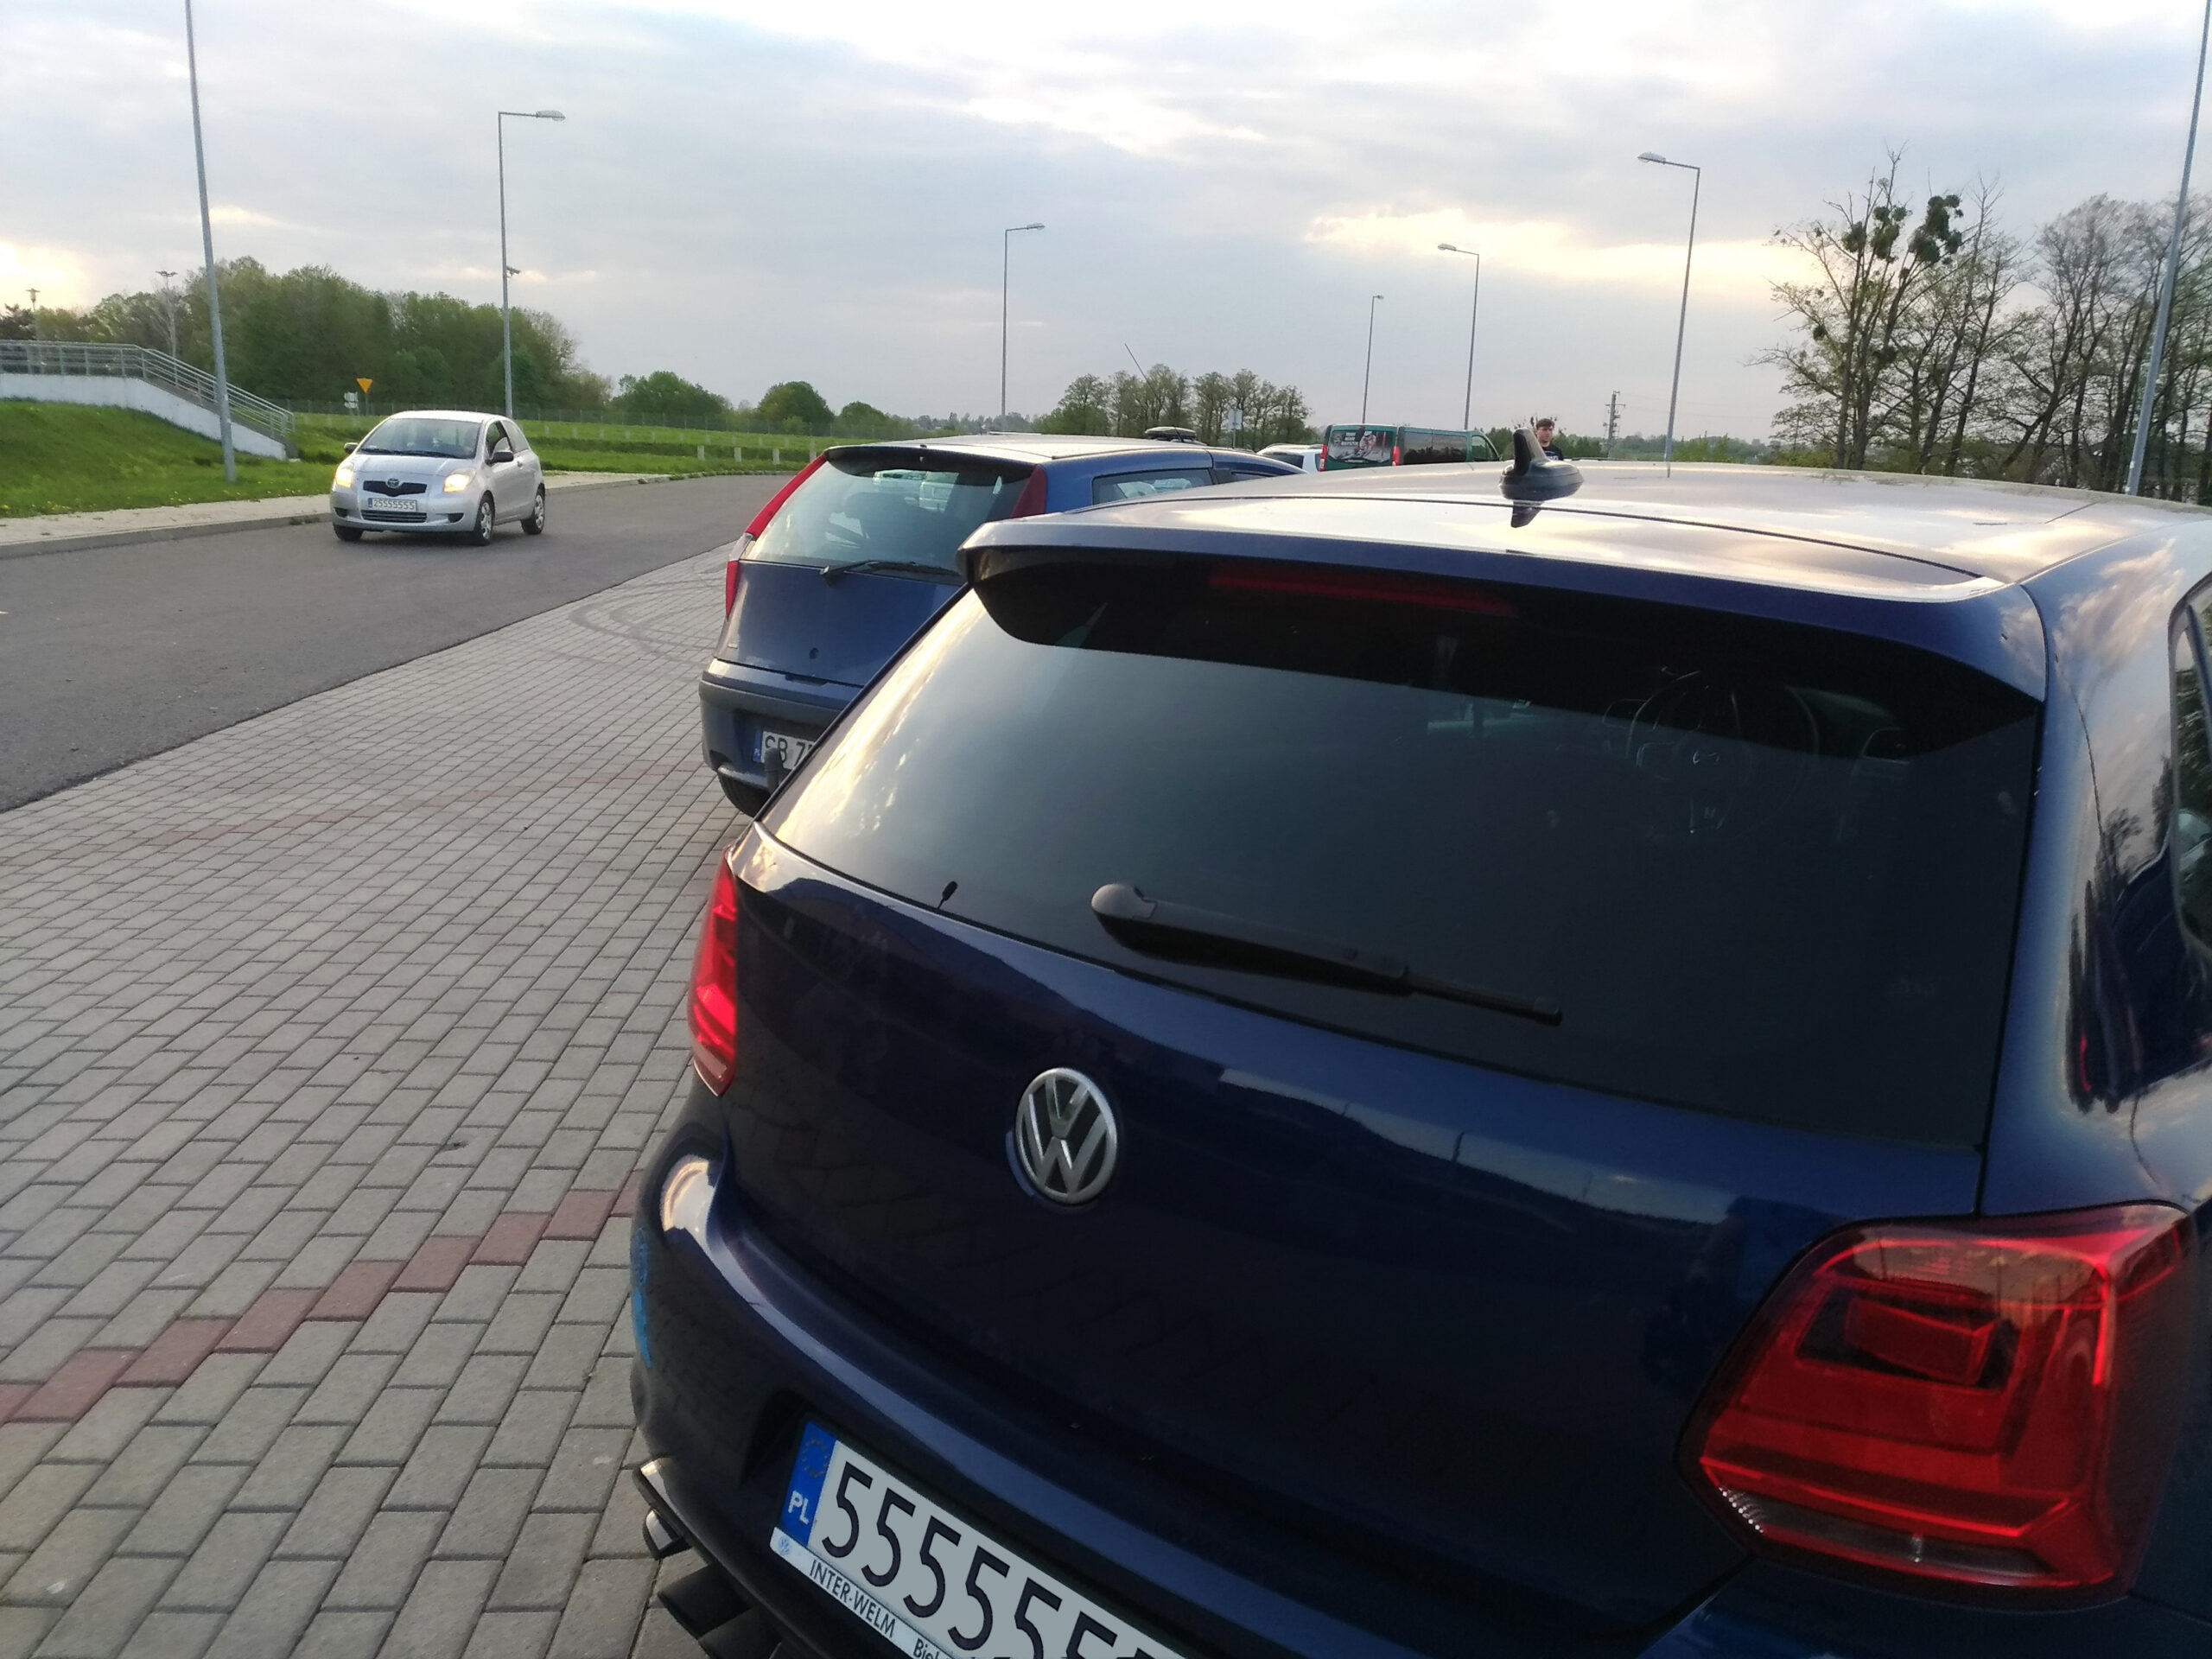 R-Line roof spoiler — Polo 6R R-Line / GTI / BlueGT/6C R-Line   P 20180425 184840 vHDR On Photoshop scaled